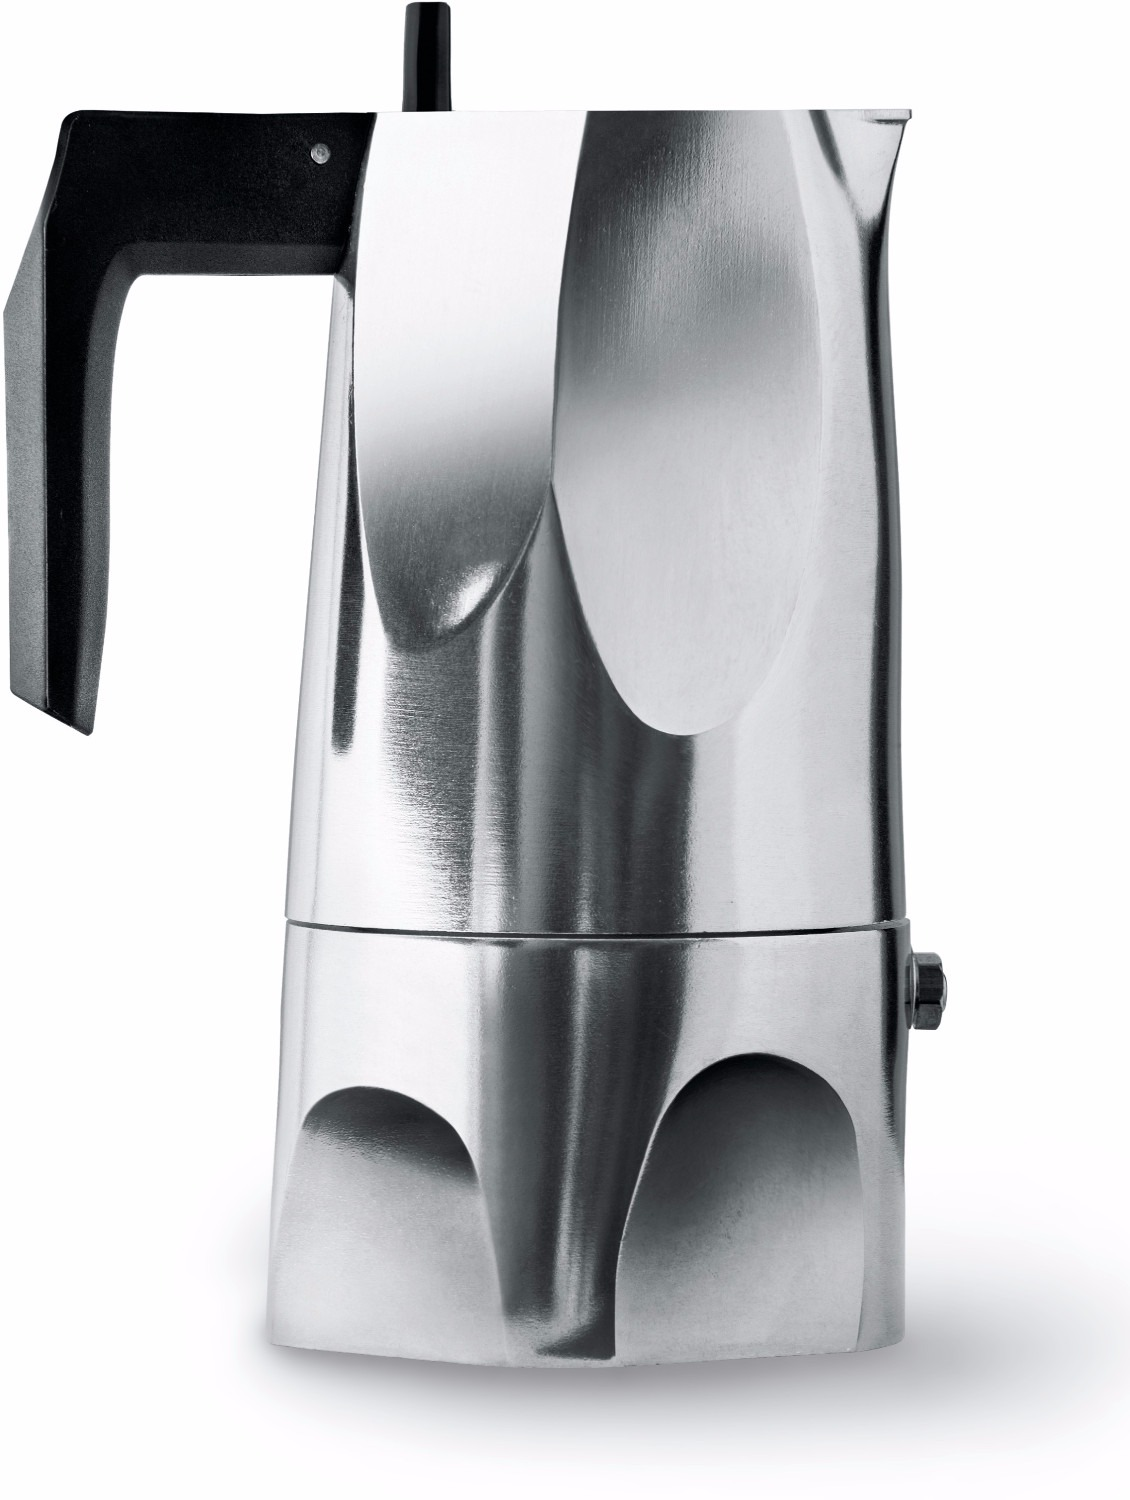 Alessi Ossidiana MT18 3 Cups Espresso Coffee Maker